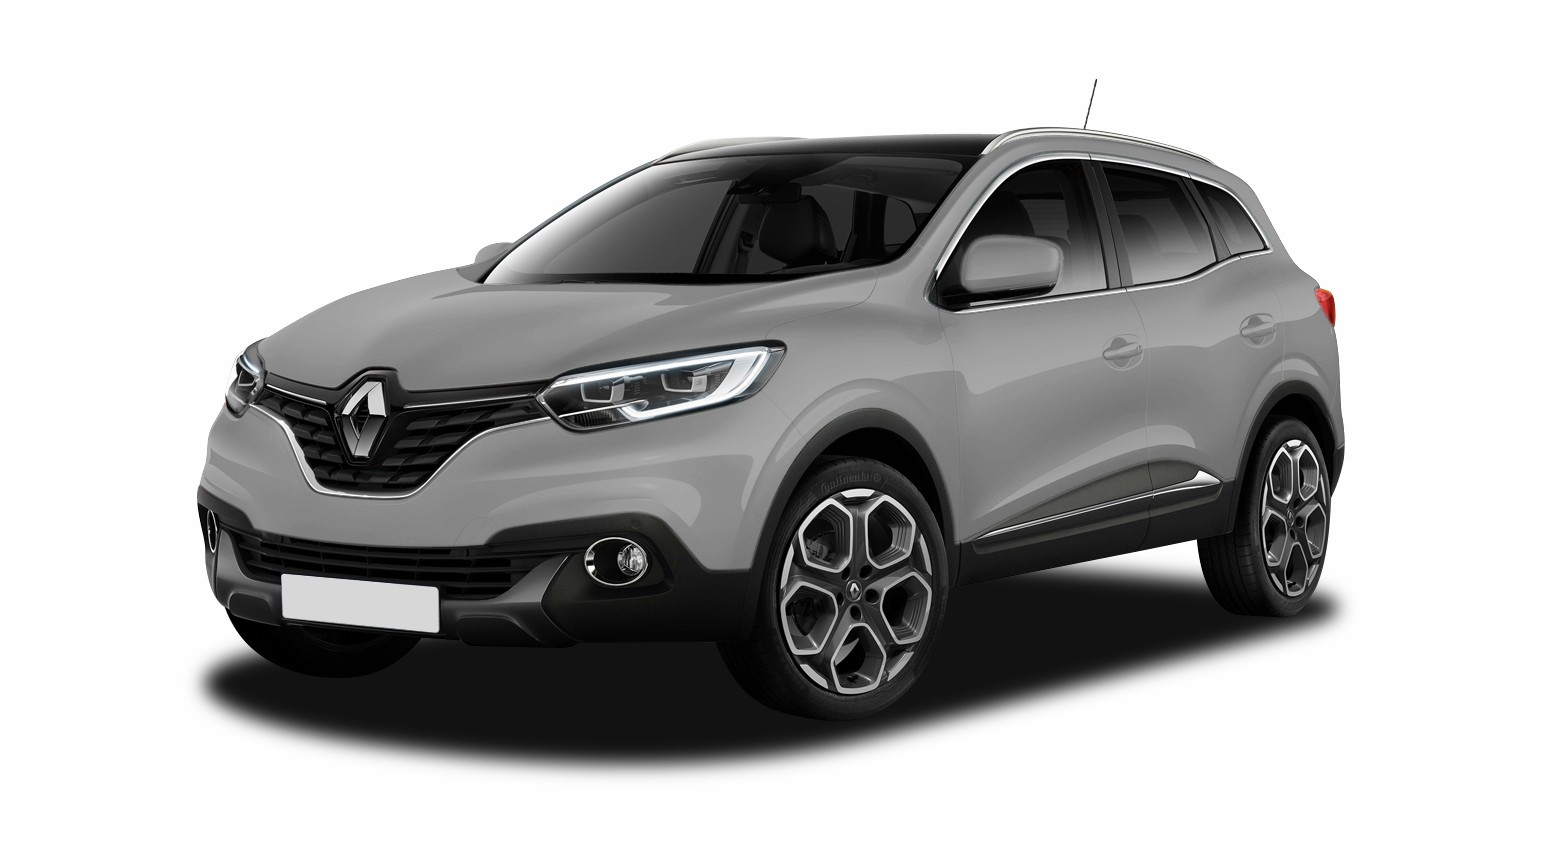 renault kadjar 4x4 et suv 5 portes diesel 1 6 dci 130 4x4 bo te manuelle finition. Black Bedroom Furniture Sets. Home Design Ideas